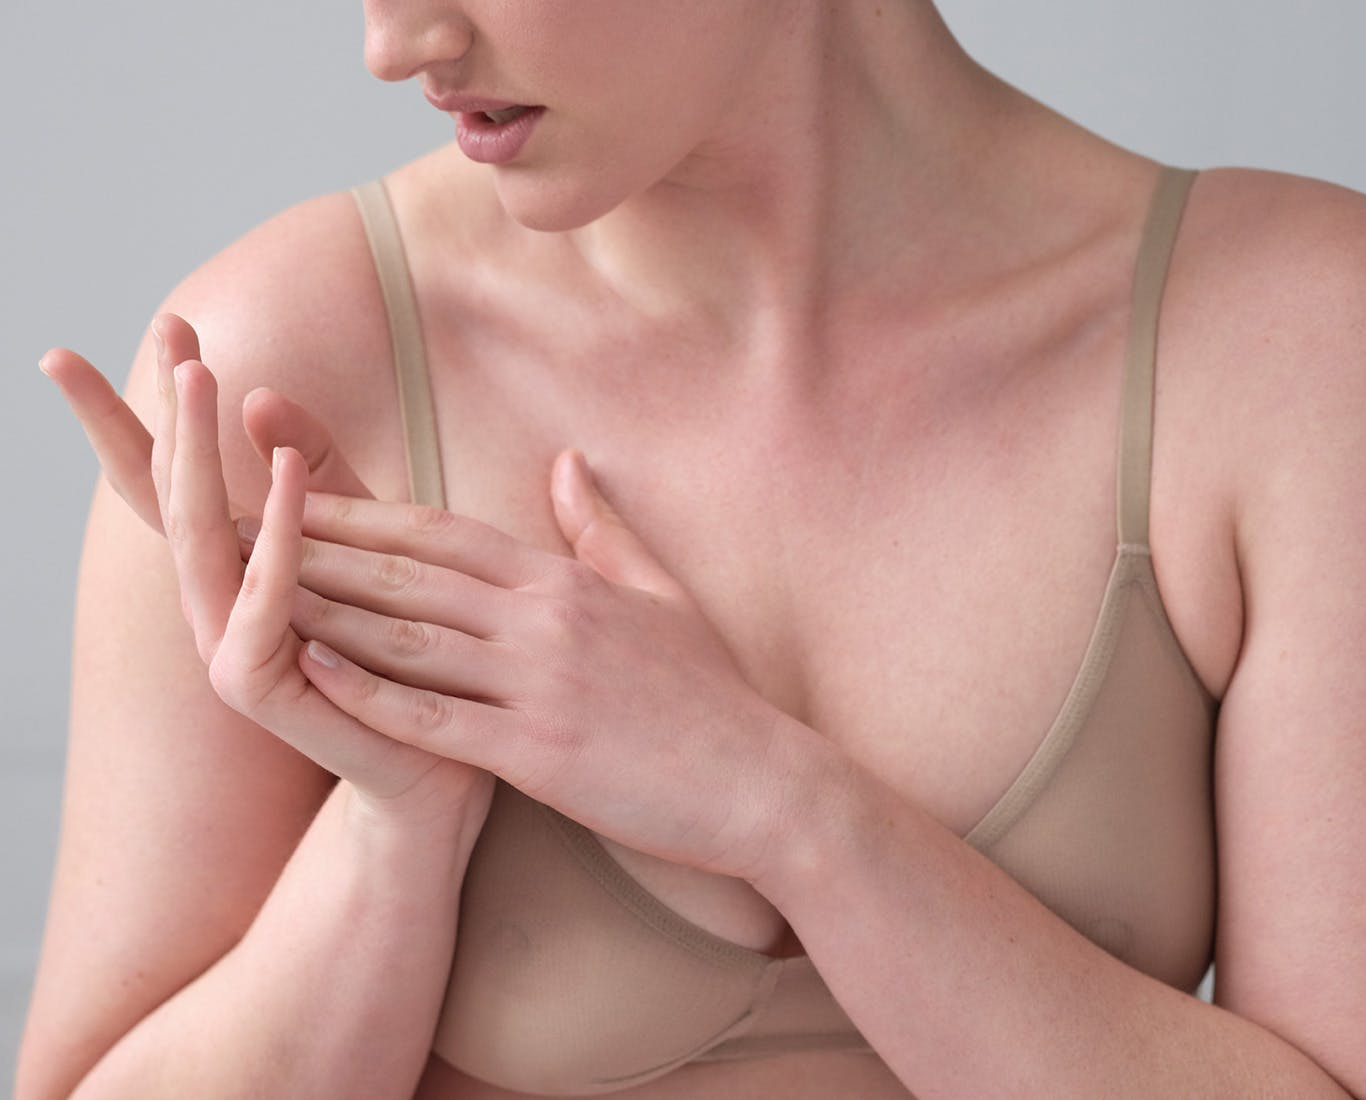 Woman putting lotion on hands